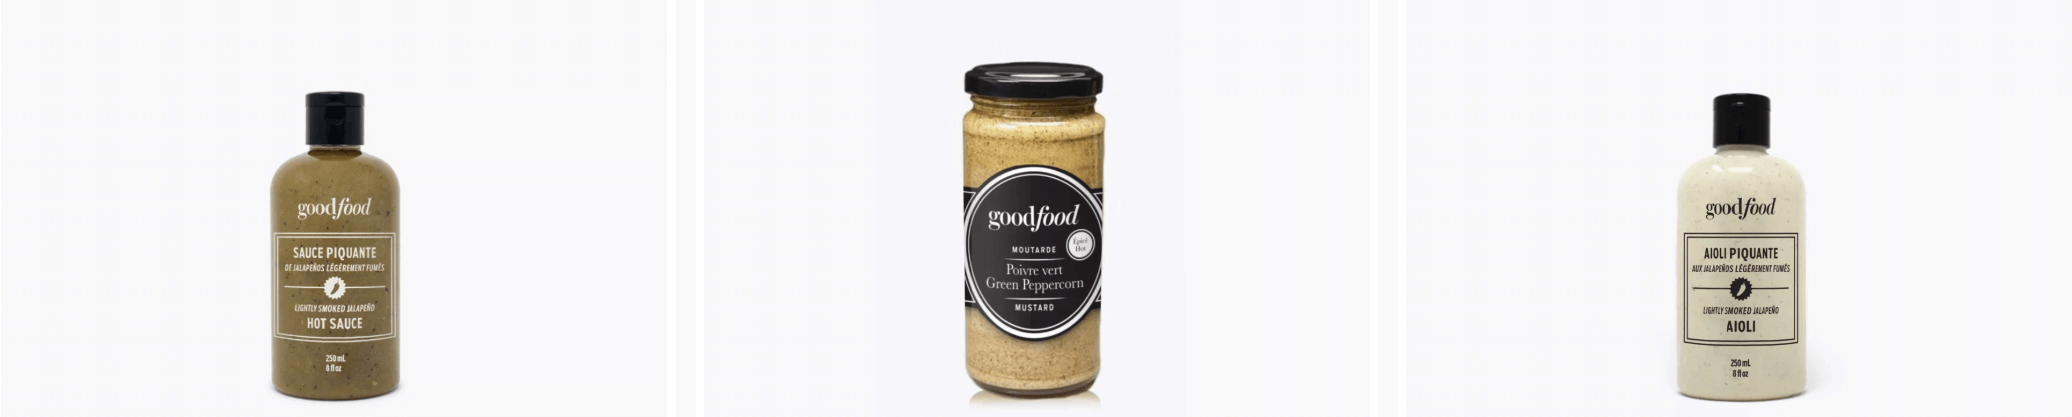 Product shots of 3 Goodfood hot sauces